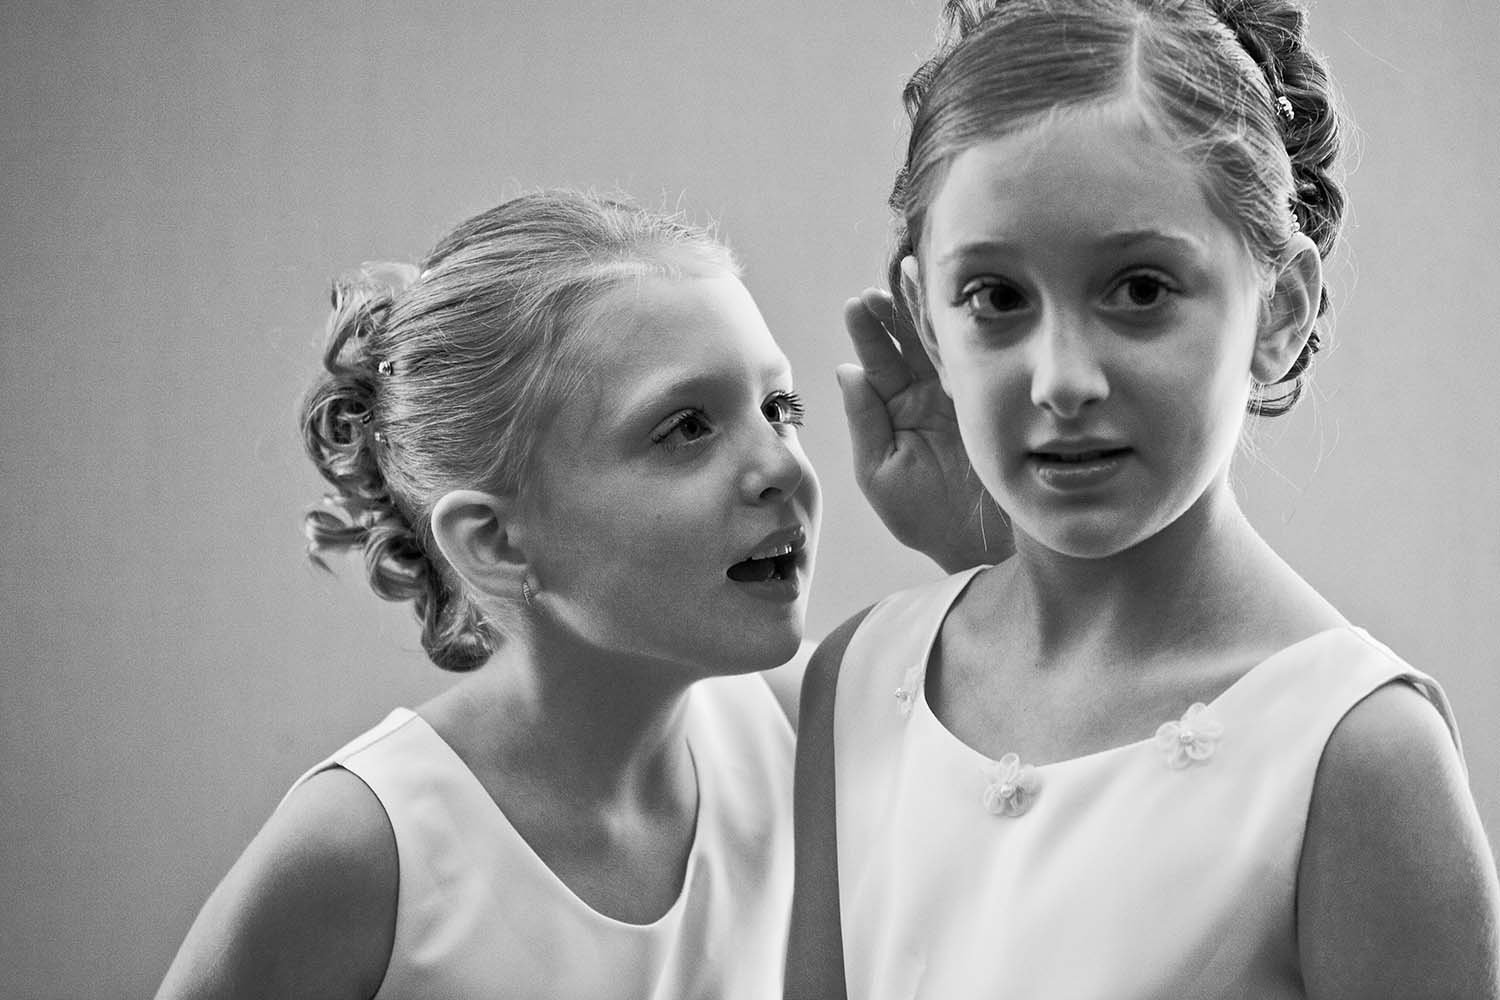 Flower girl whispering to each other, documentary wedding photography, candid wedding photograph